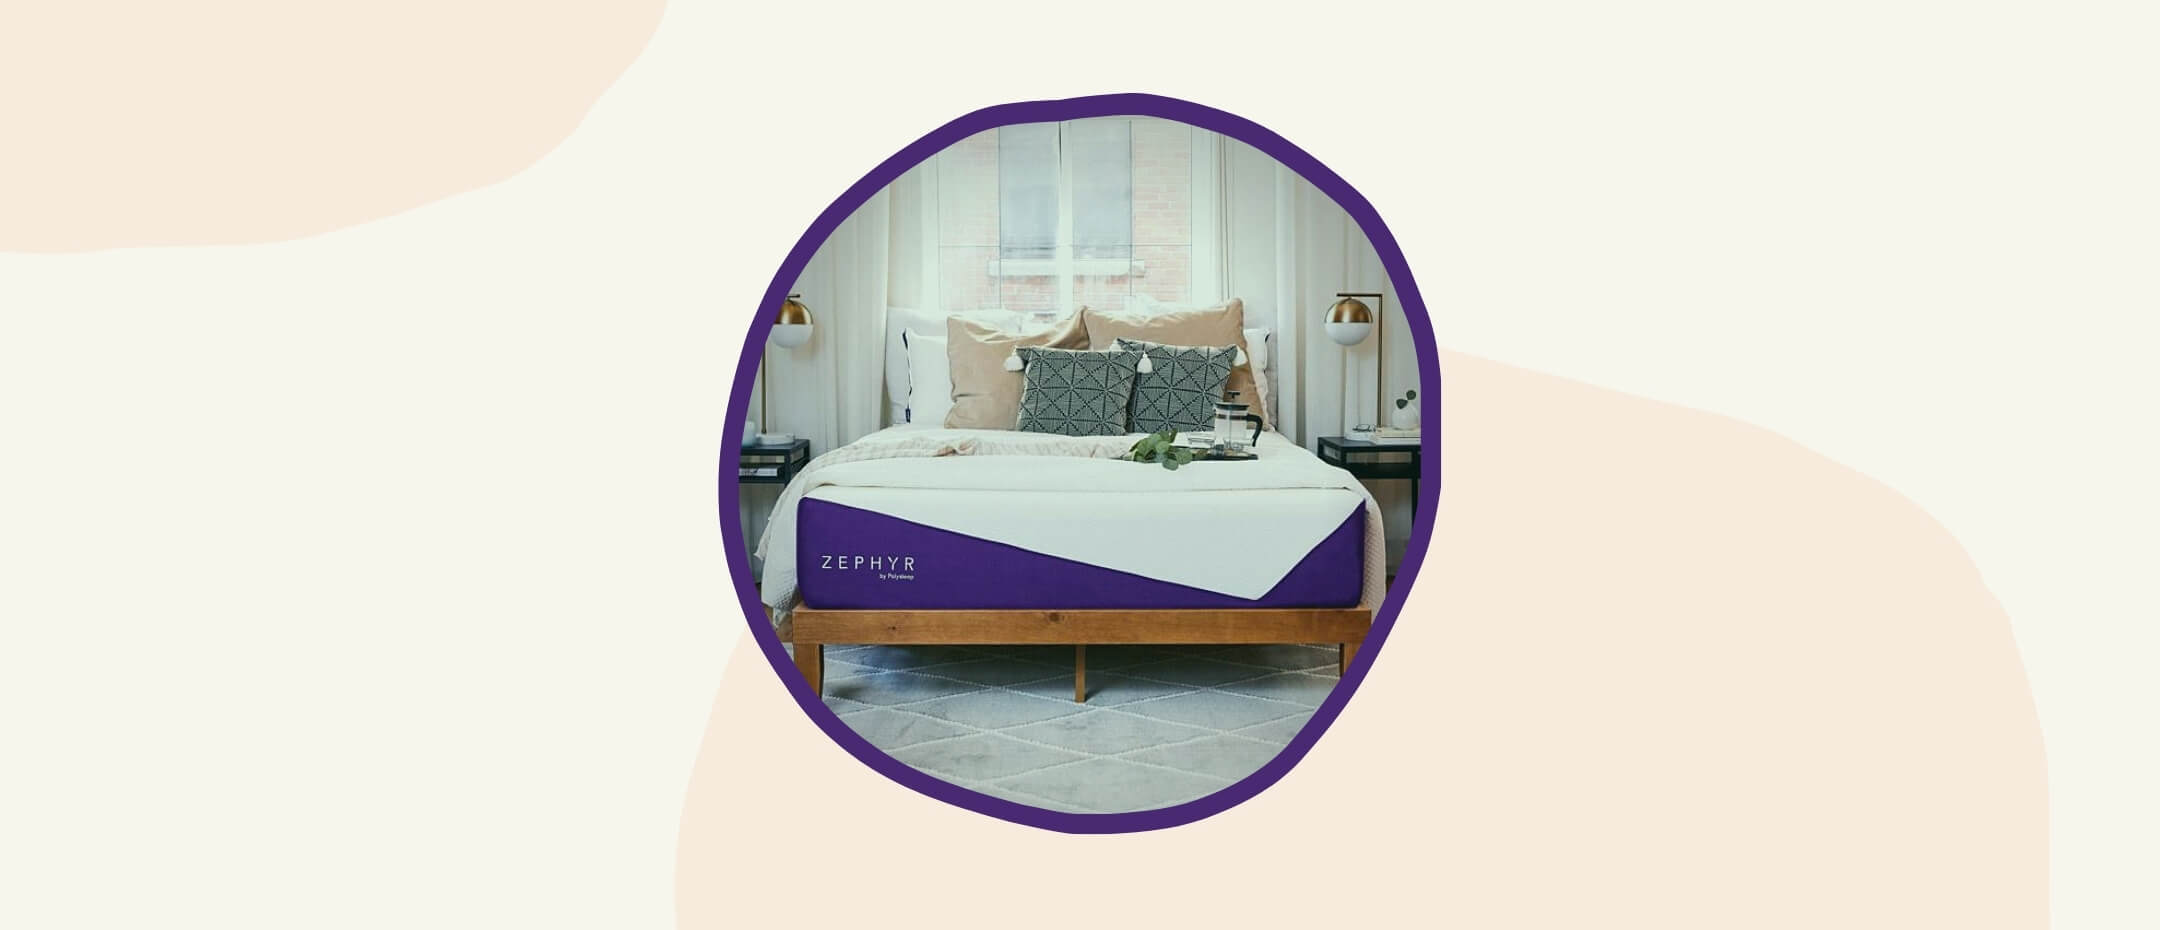 The Polysleep Zephyr bed in a bedroom